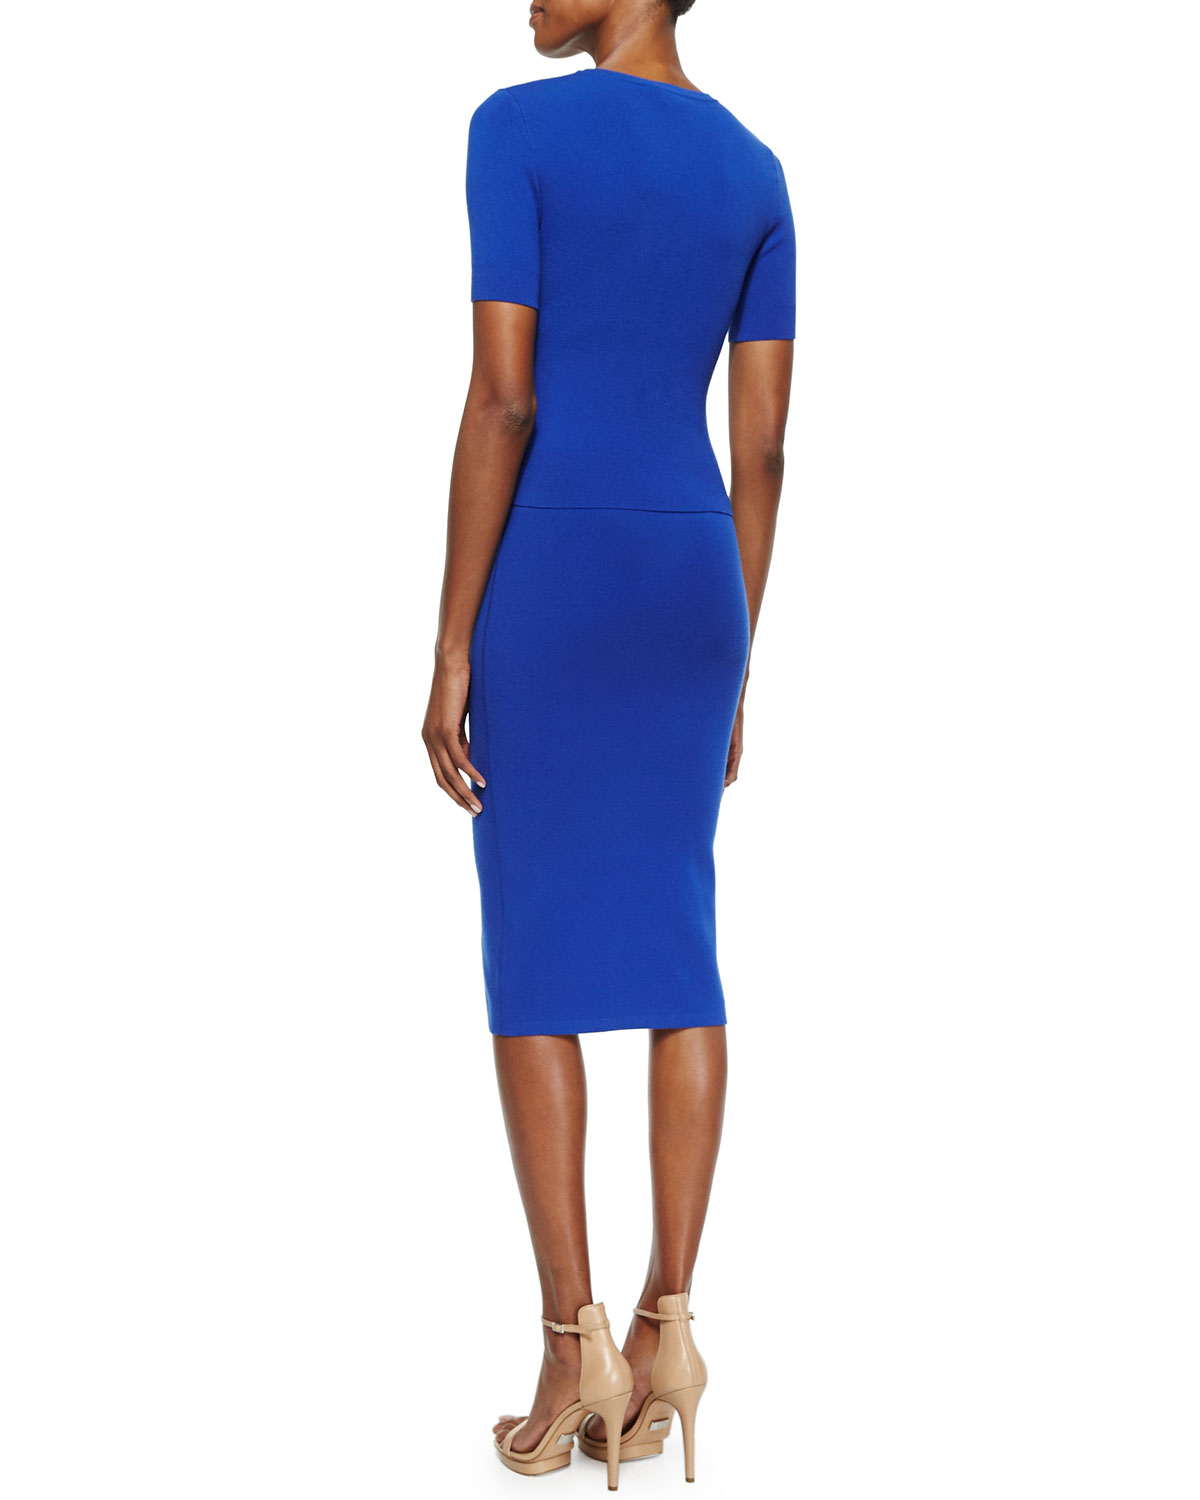 michael kors stretch knit pencil skirt in blue lyst